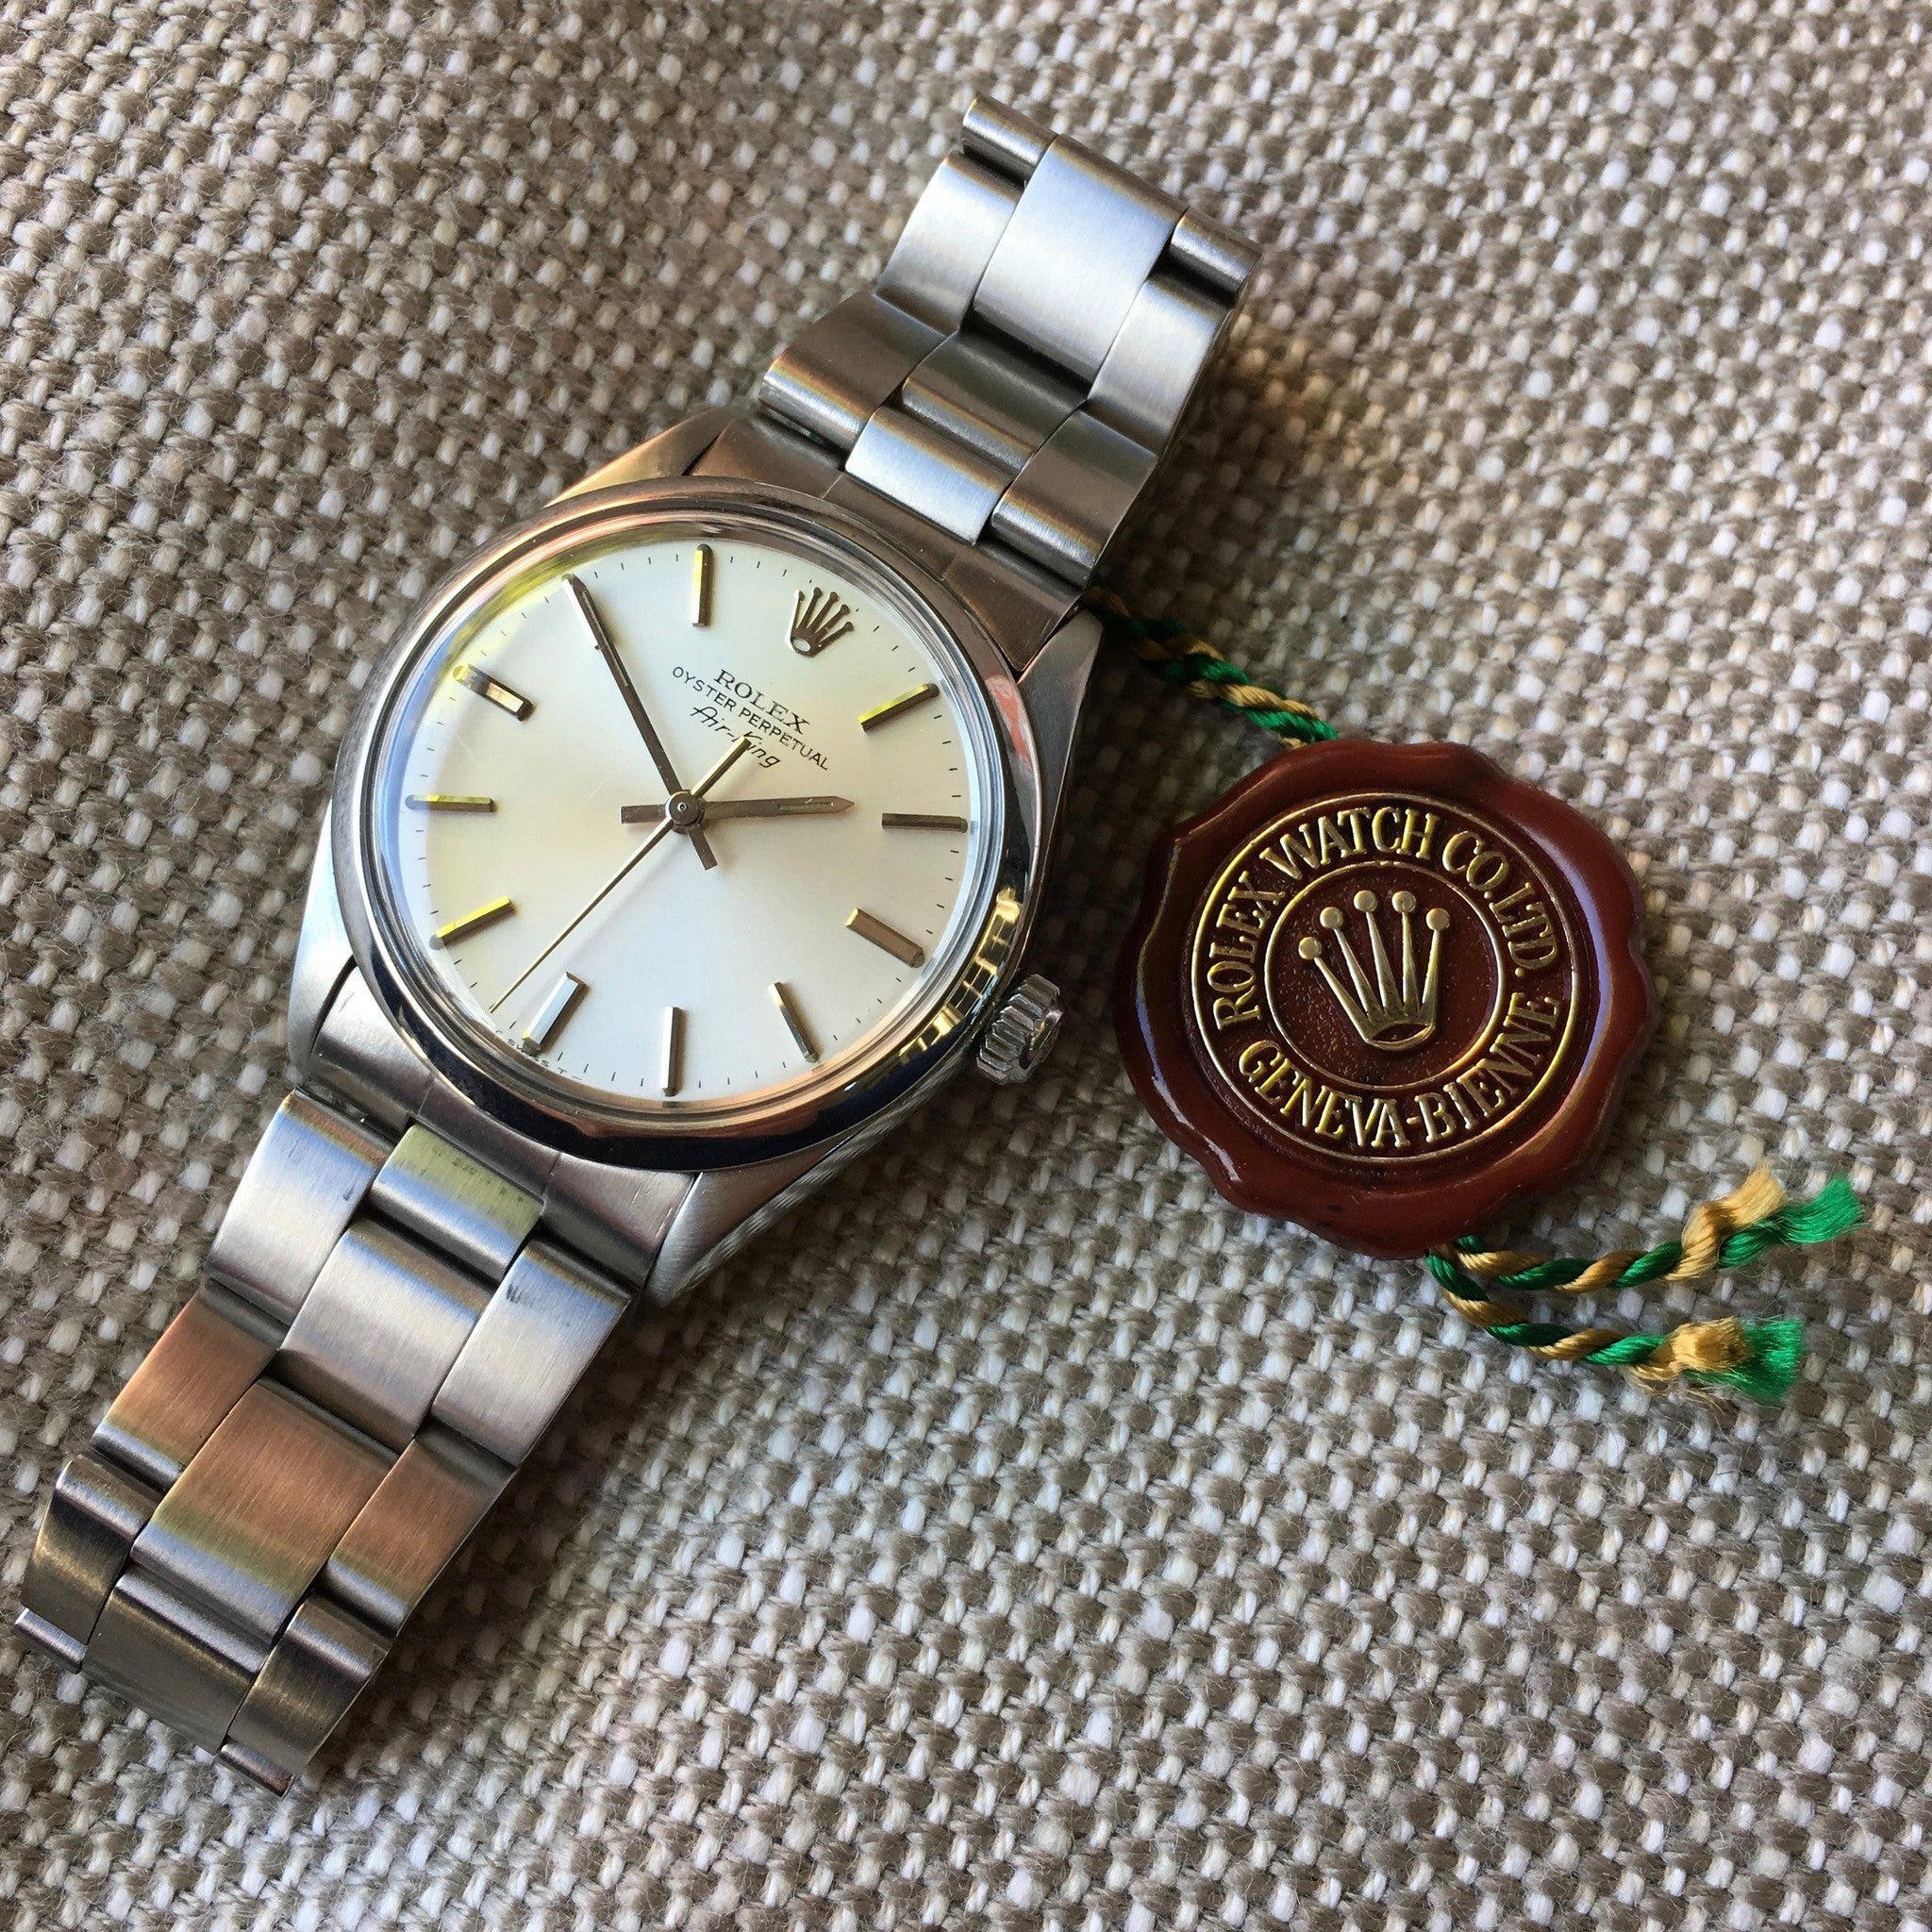 Vintage Rolex Air King 5500 Stainless Steel 1980 Caliber 1520 Automatic Wristwatch - Hashtag Watch Company